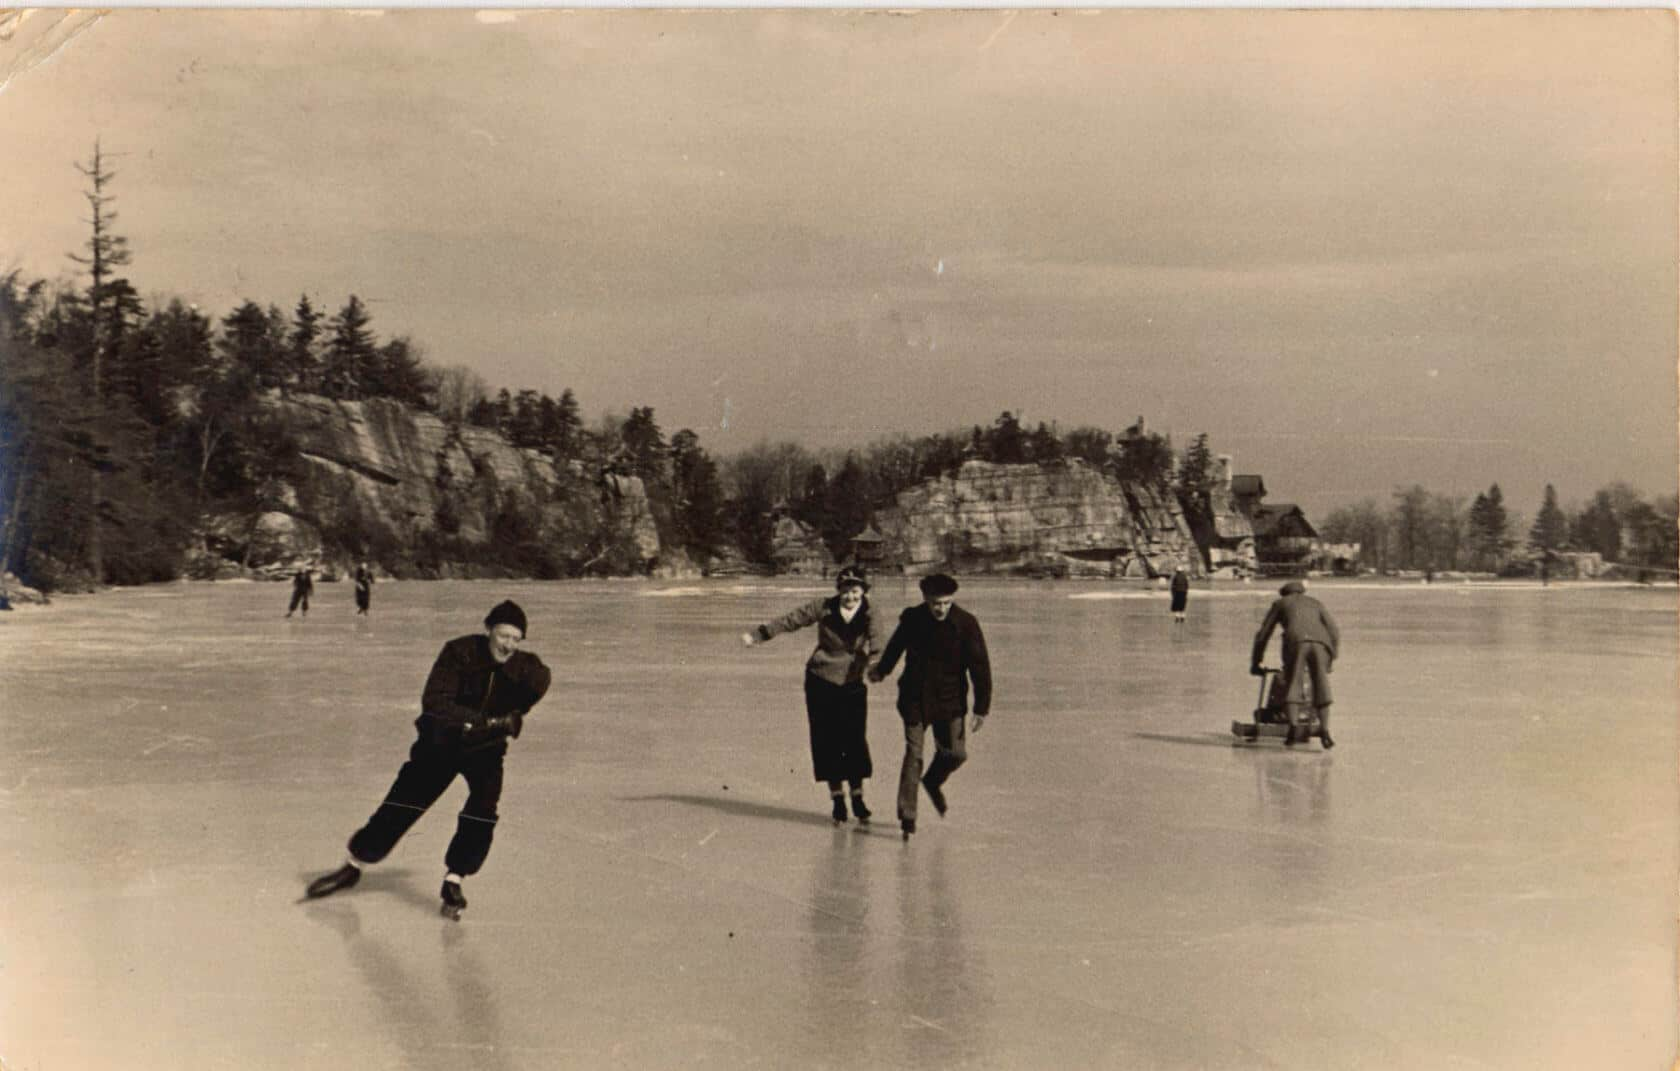 Ice Skating on the Lake in 1938